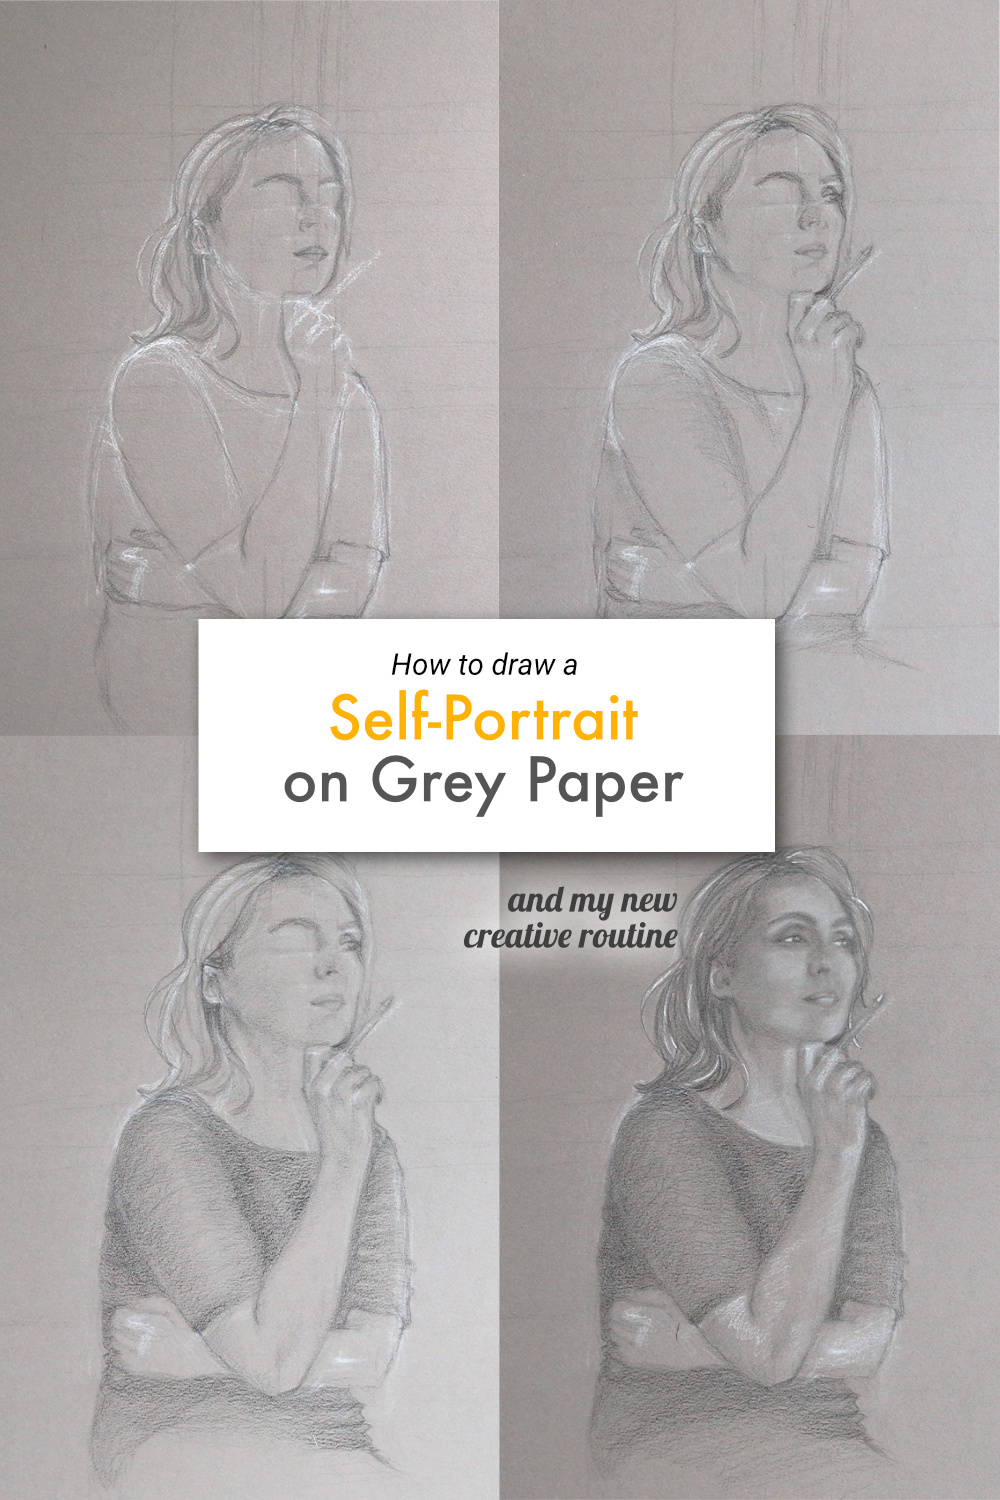 How to draw a self-portrait on grey paper, and my new creative routine | by The Daily Atelier